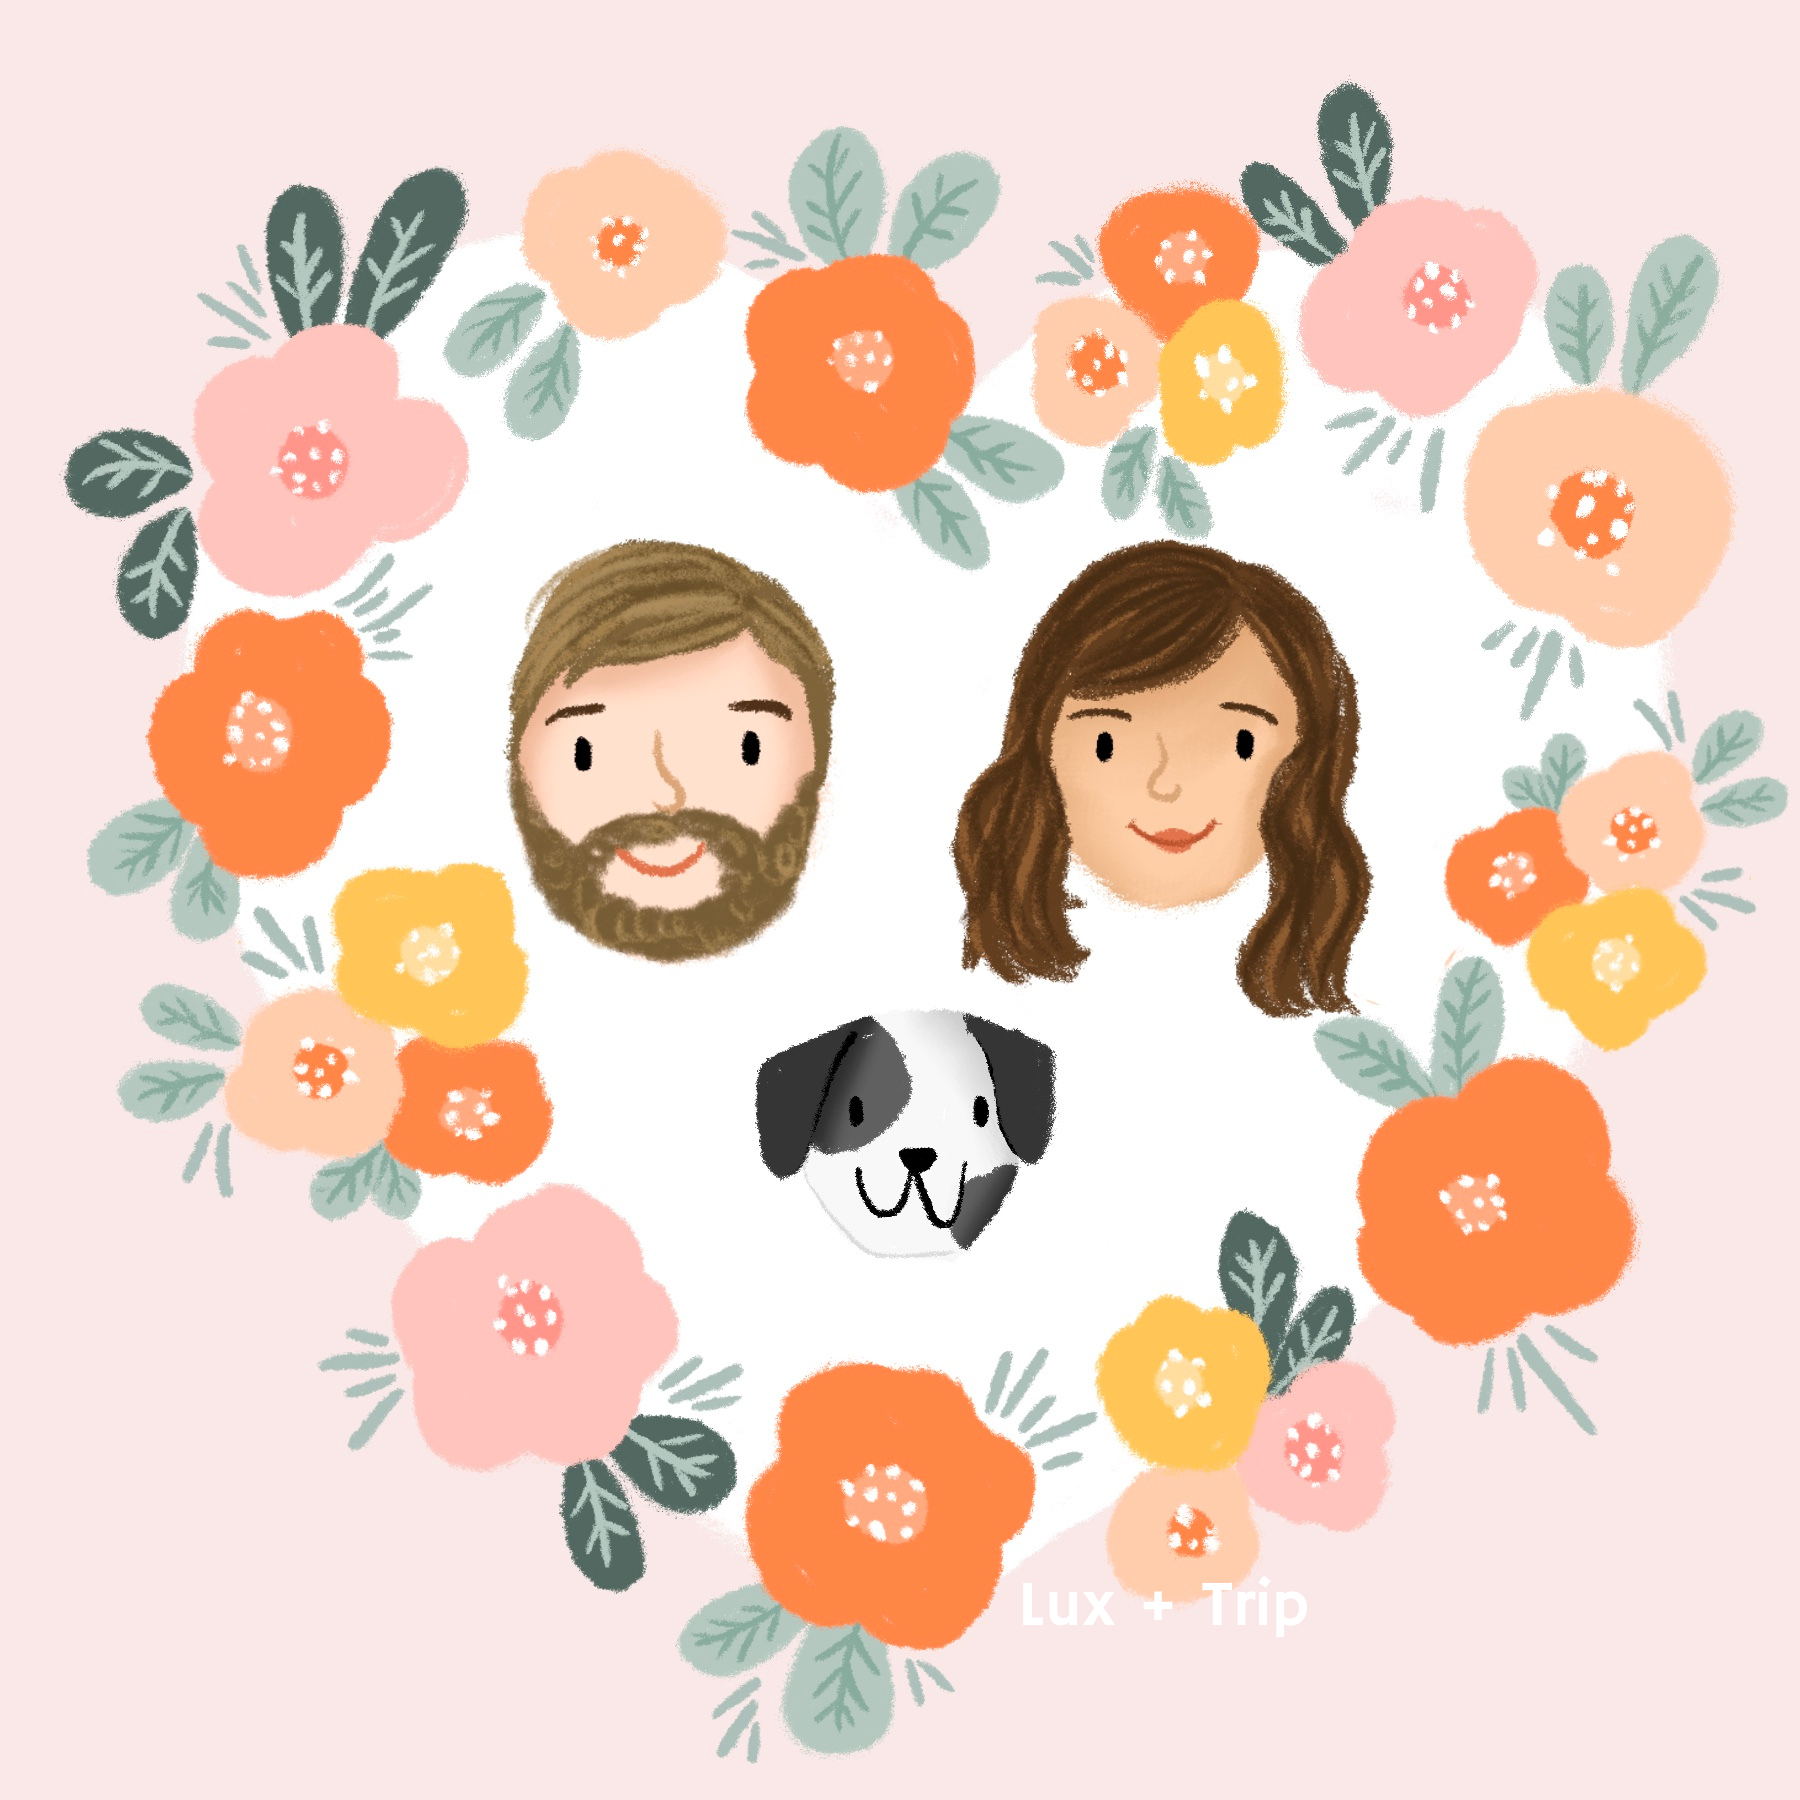 Custom Valentine's Day Quick Draw Portrait Illustration